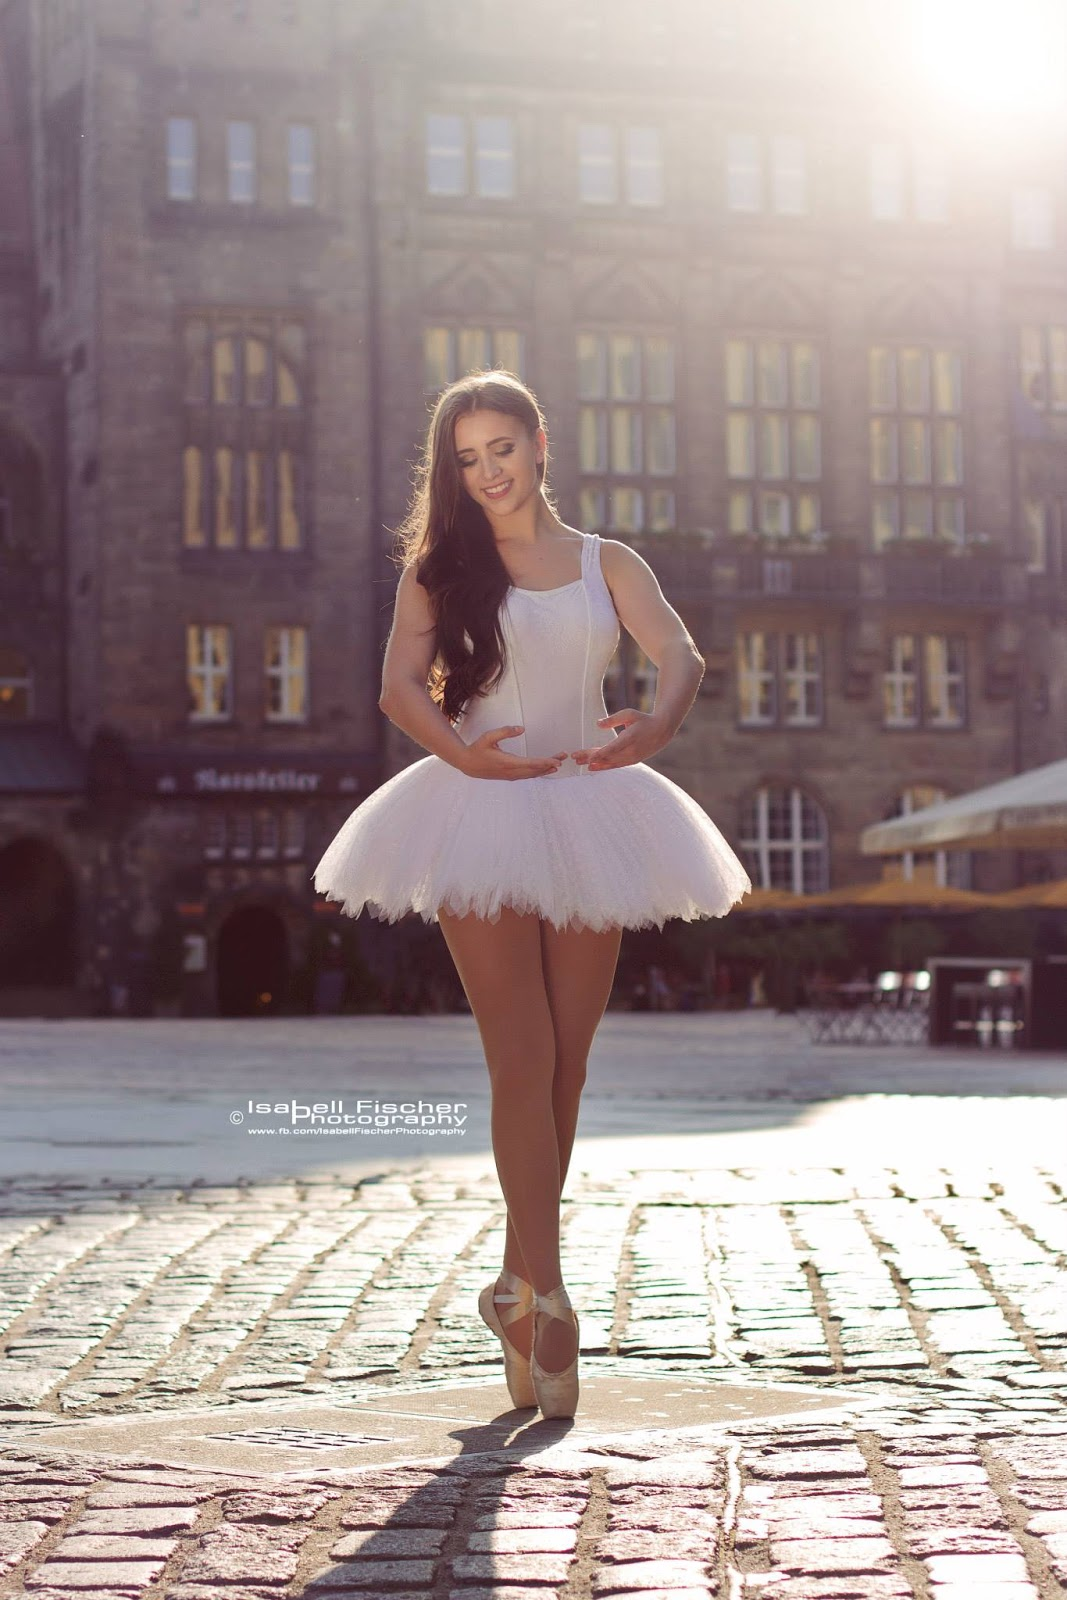 Ballerina on pointe with tutu